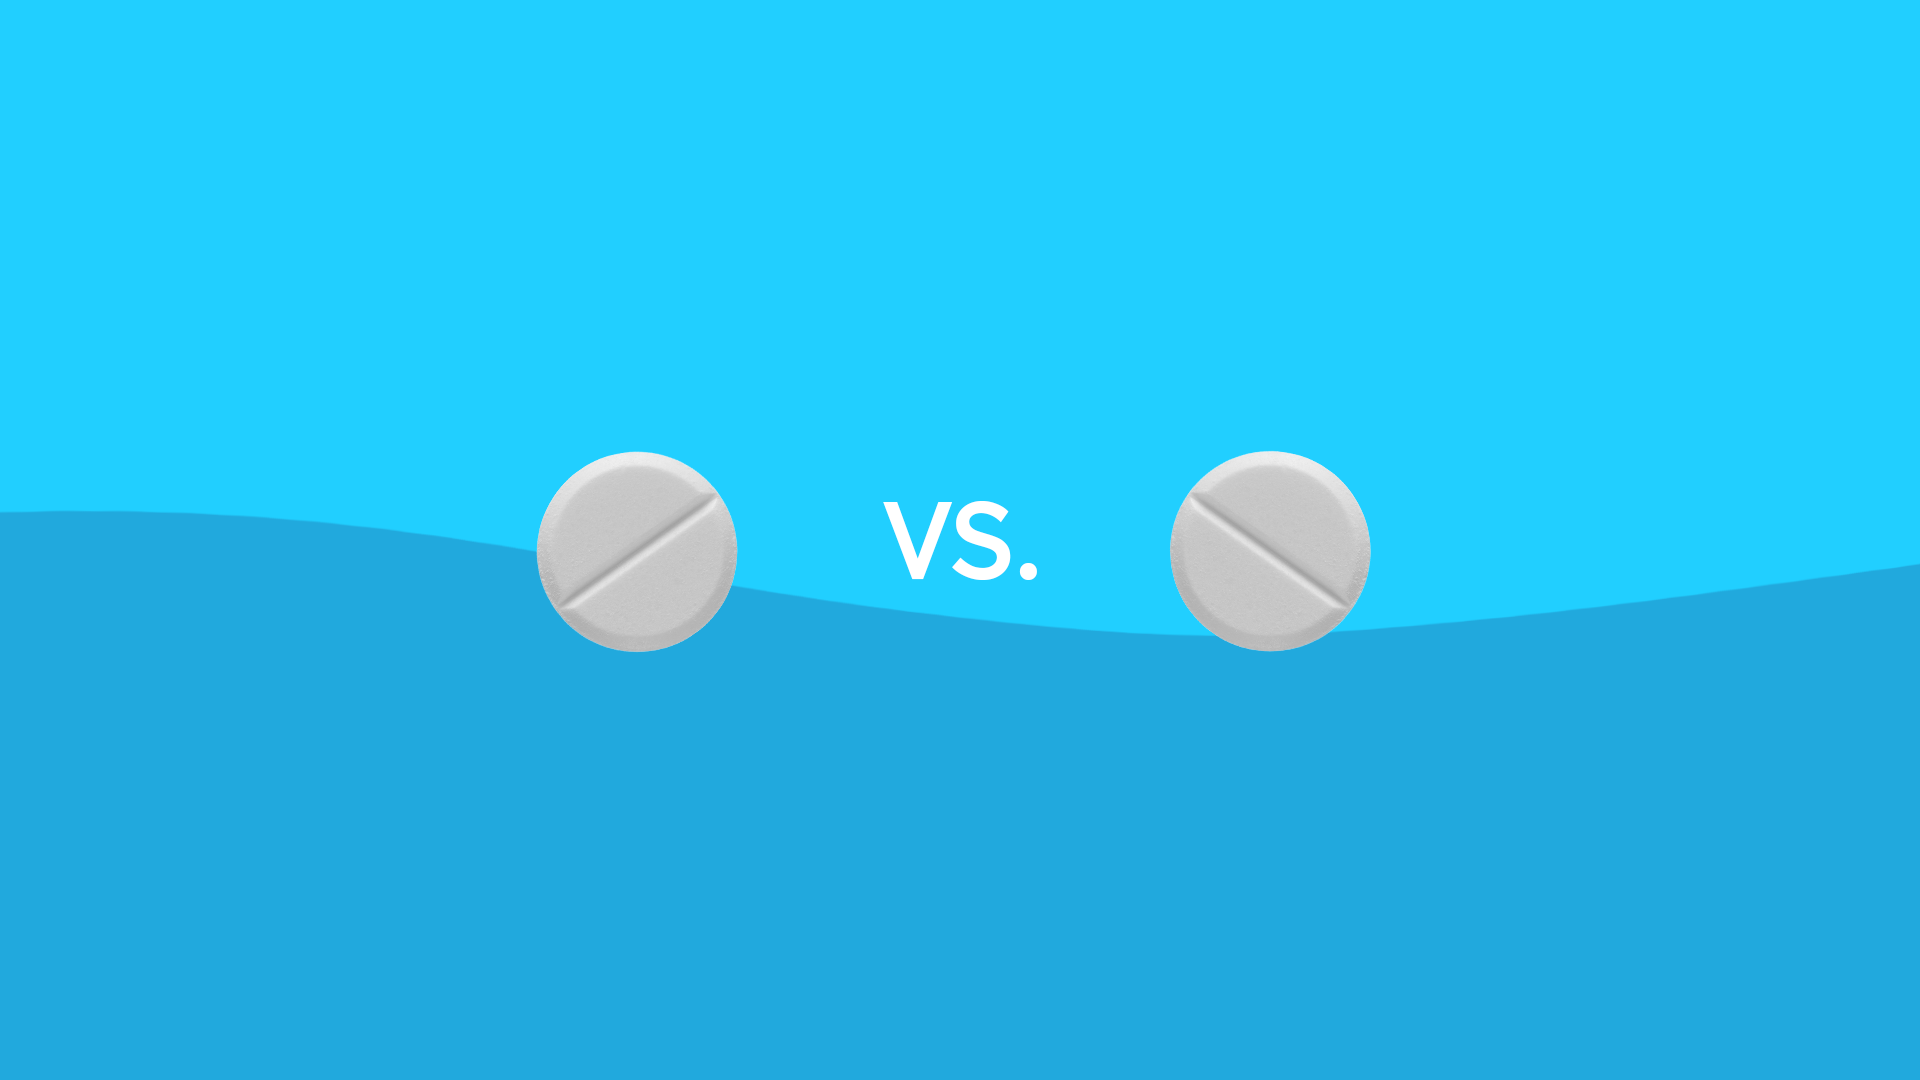 Xyzal vs. Allegra: Differences, similarities, and which is better for you